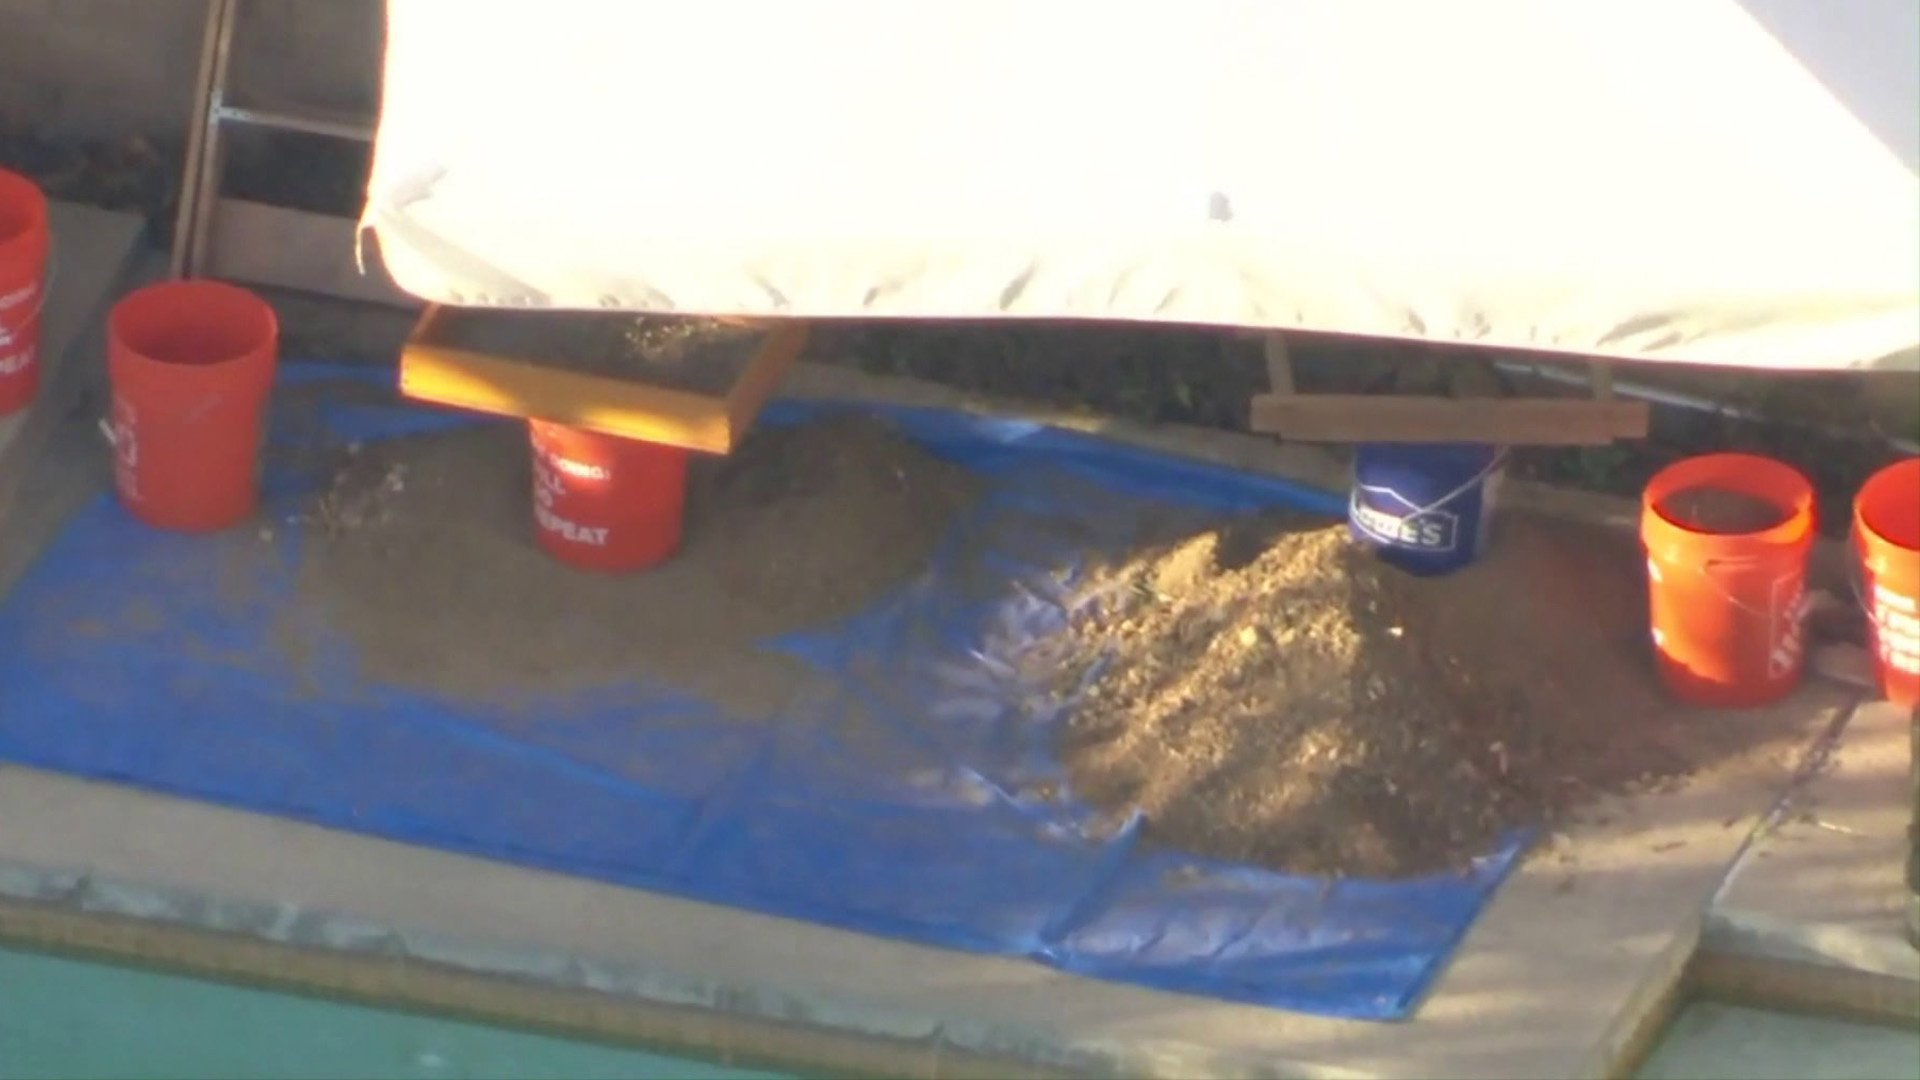 Bones were discovered buried in a backyard at a home in the 24000 block of Via Madrugada in Mission Viejo. (Credit: KTLA)